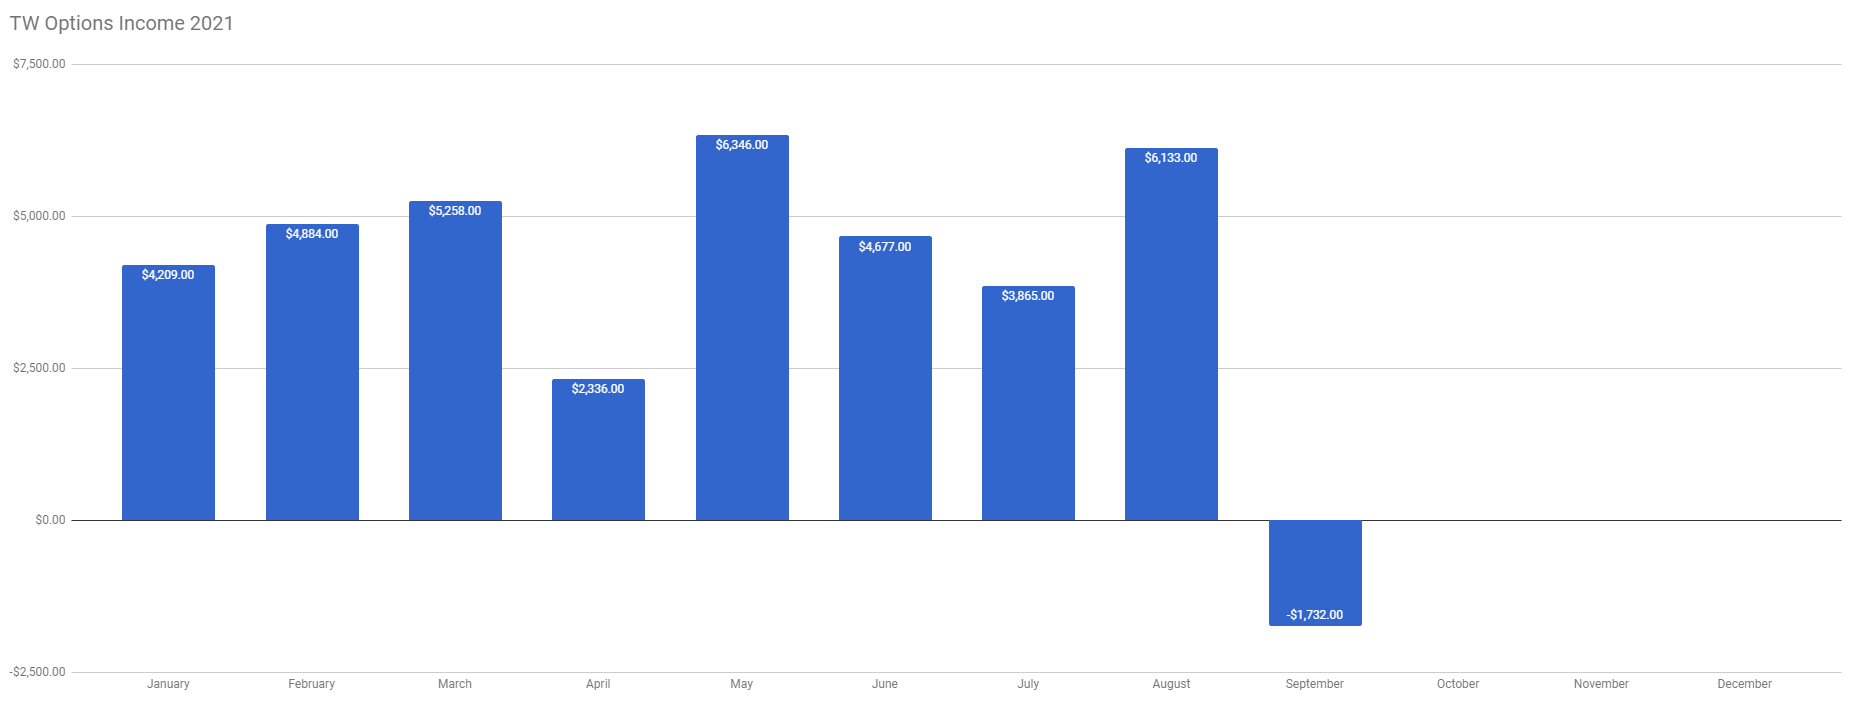 TW Options Income week 37